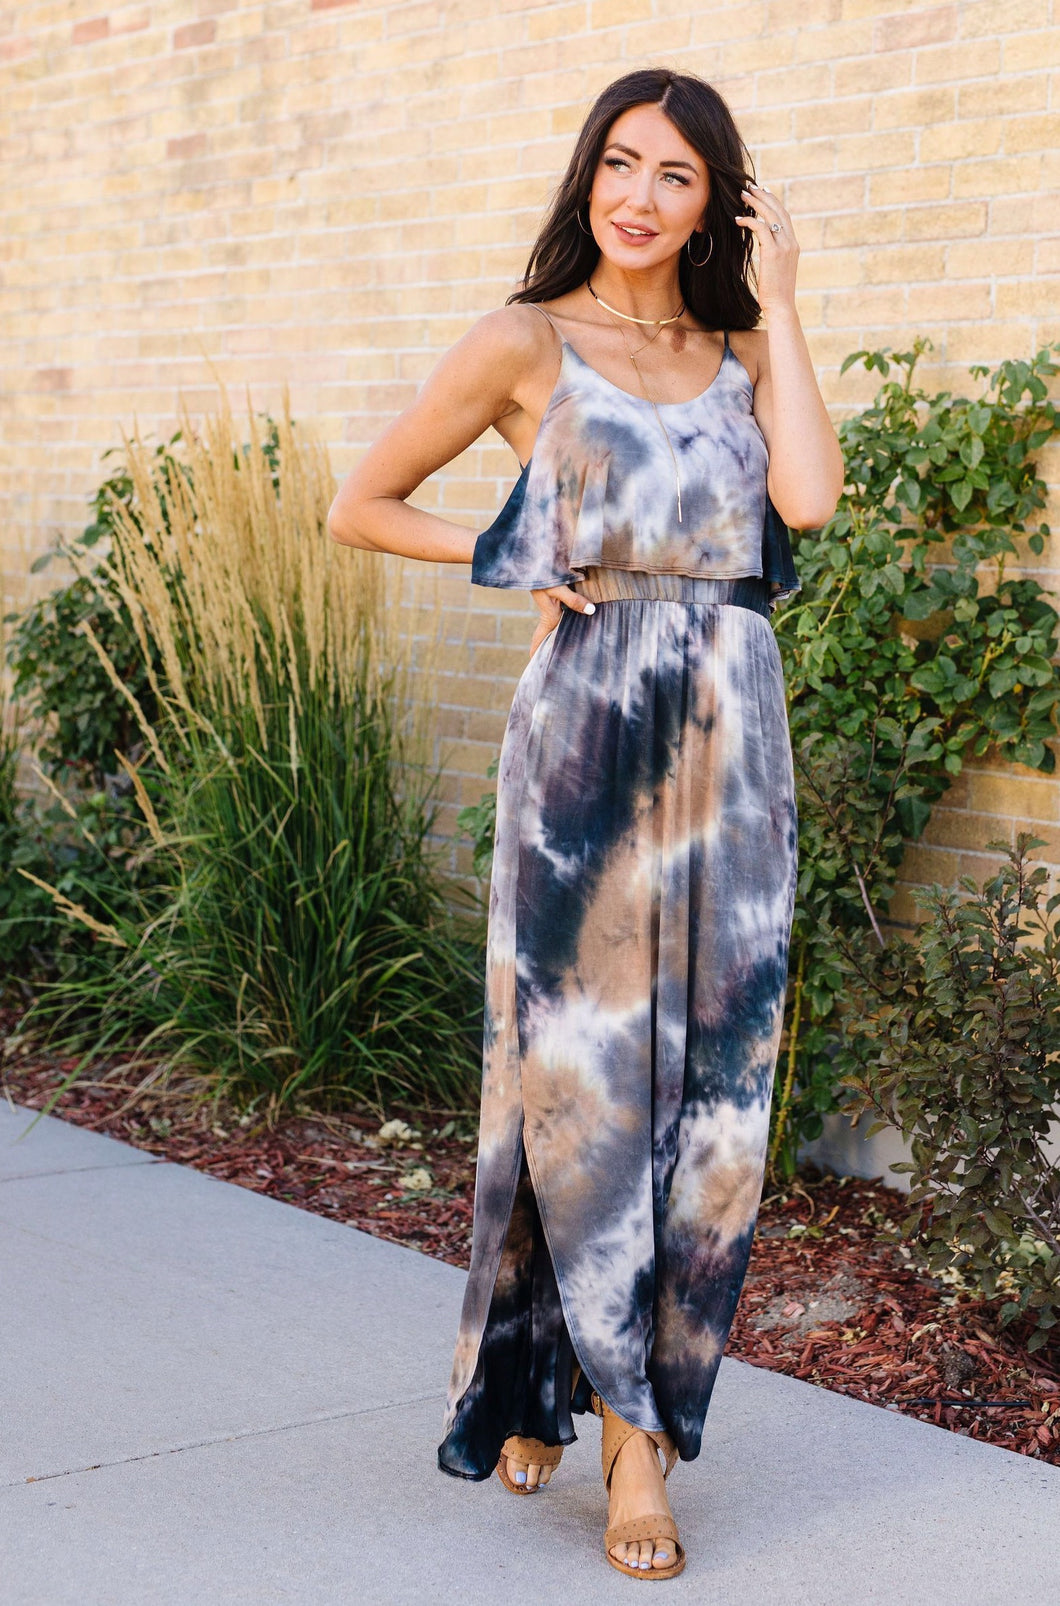 Timeless Neutral Tie Dye Maxi Dress - Smith & Vena Online Boutique